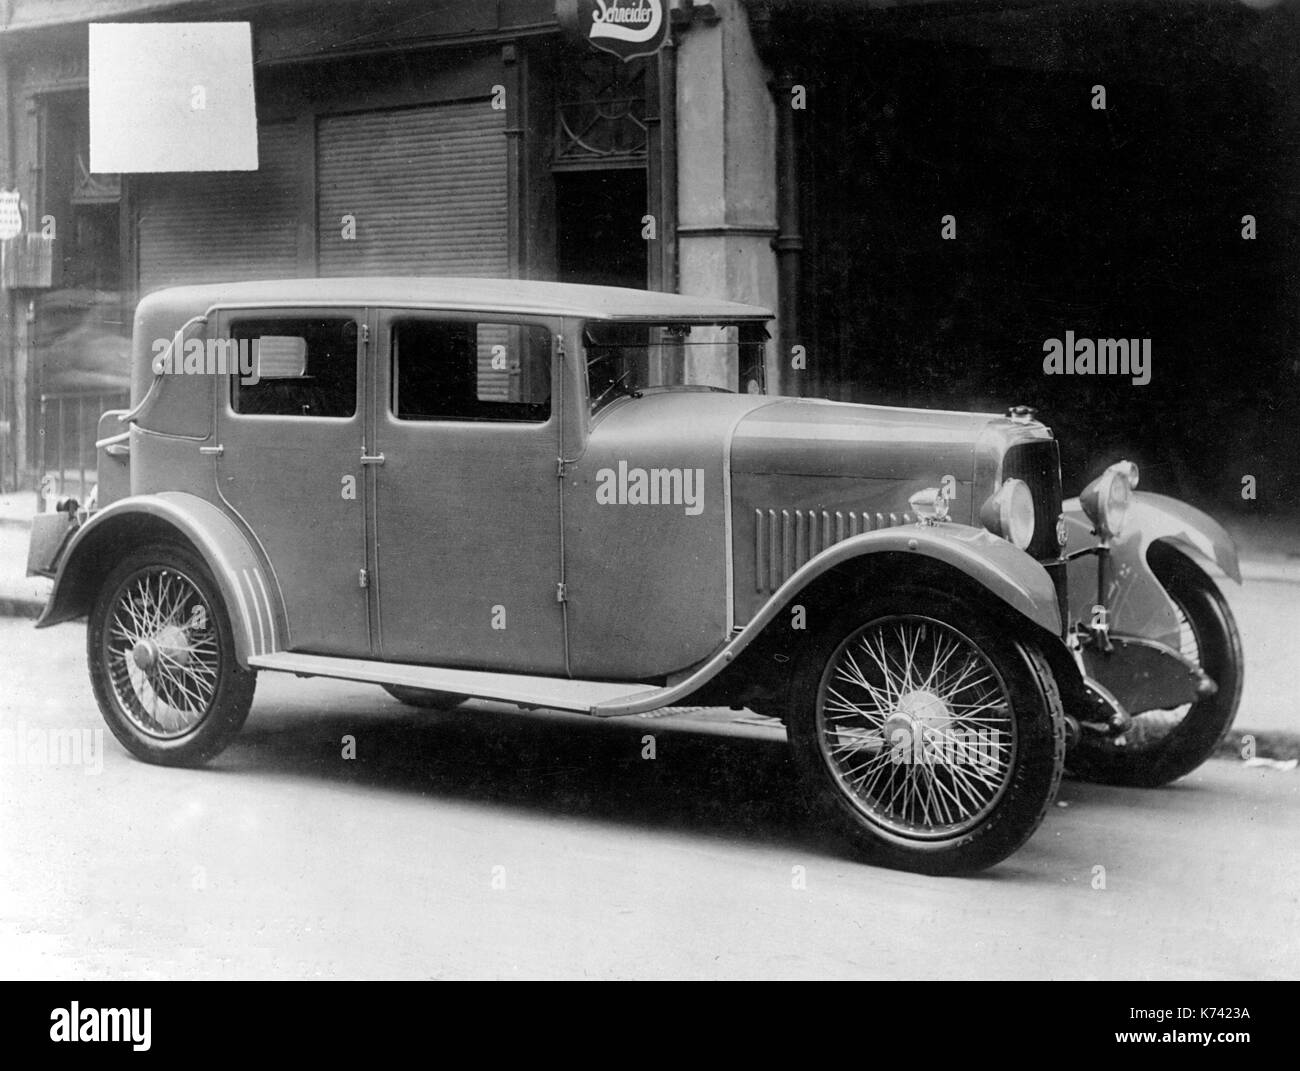 1929 Car High Resolution Stock Photography and Images - Alamy